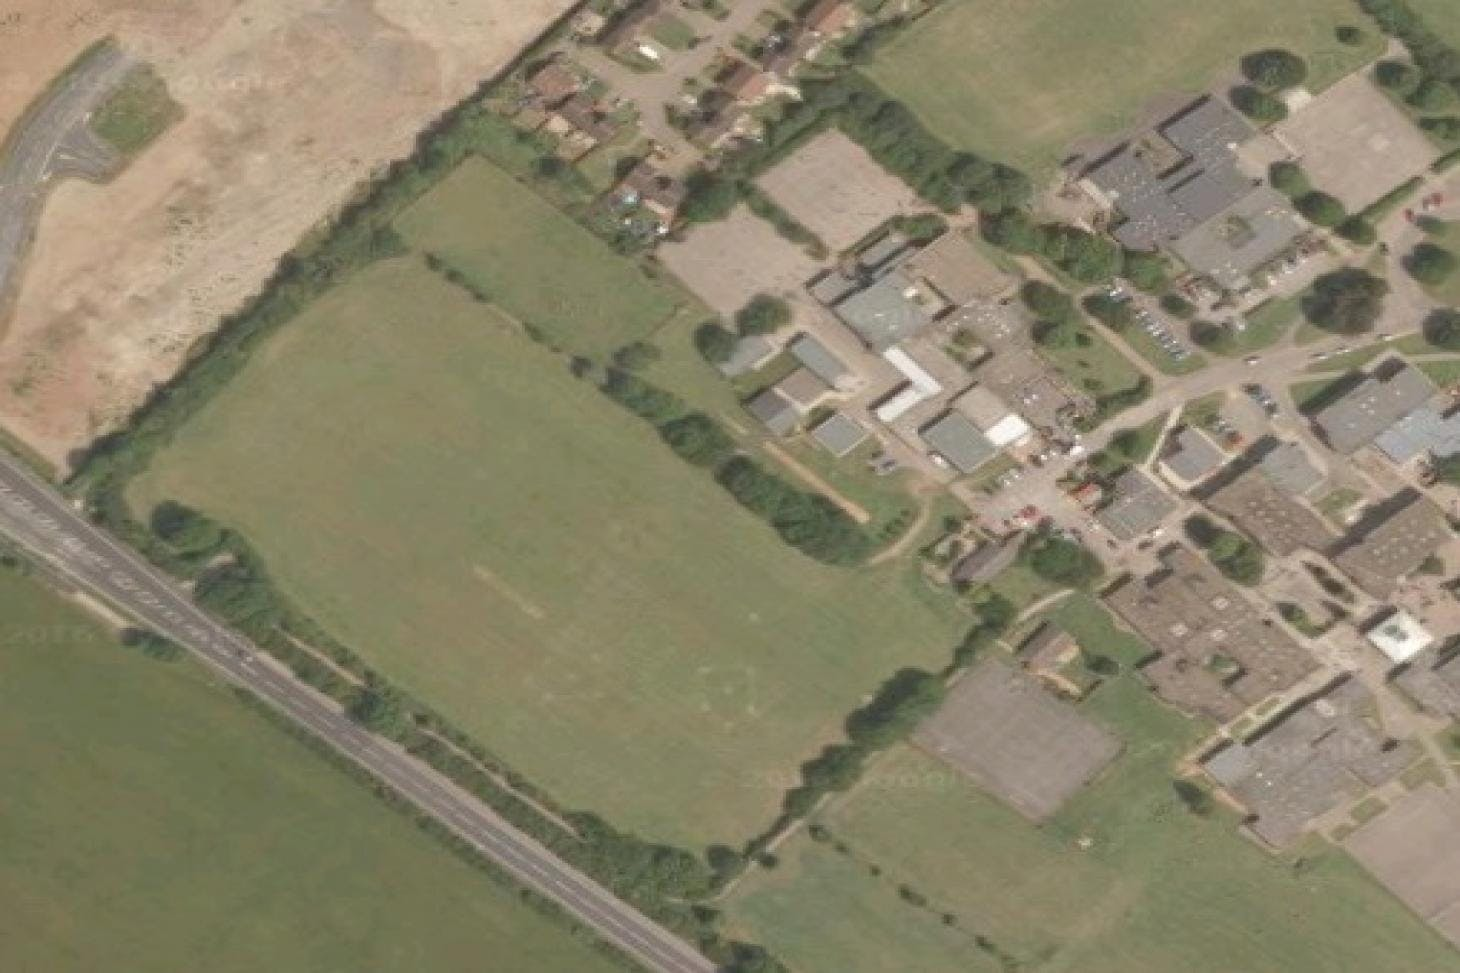 Streetfield Middle School Full size | Grass cricket facilities